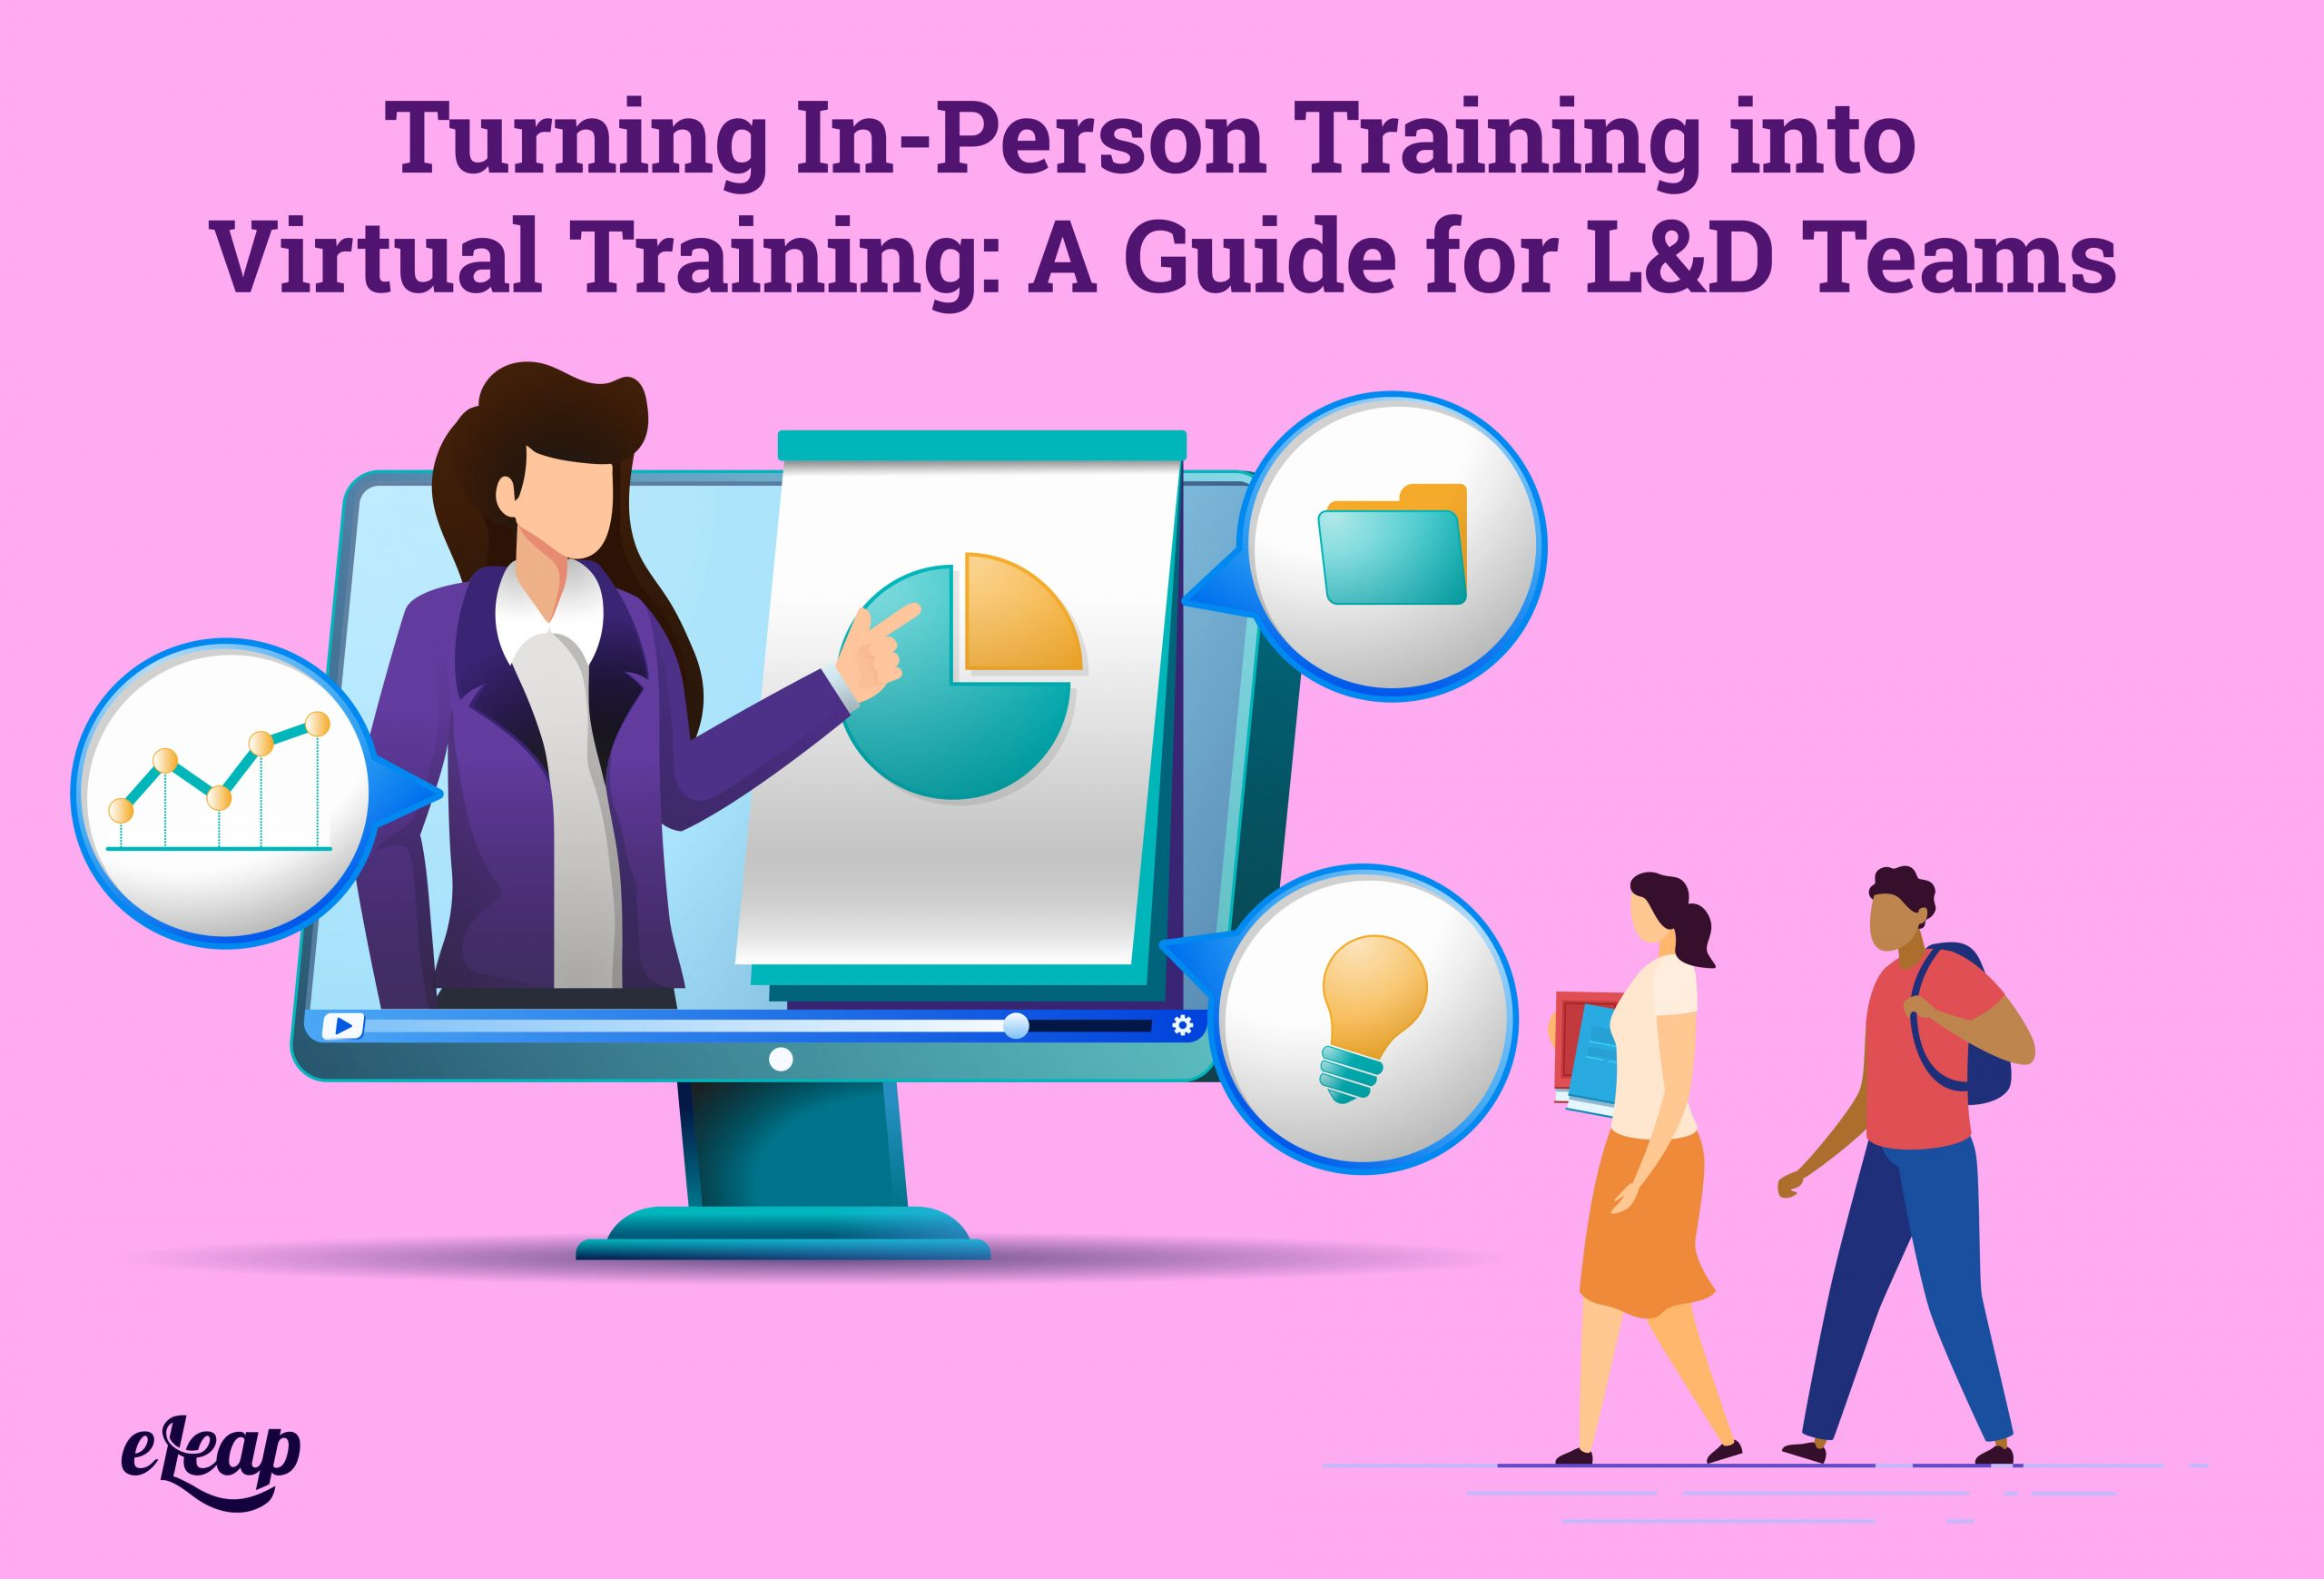 Turning In-Person Training into Virtual Training: A Guide for L&D Teams